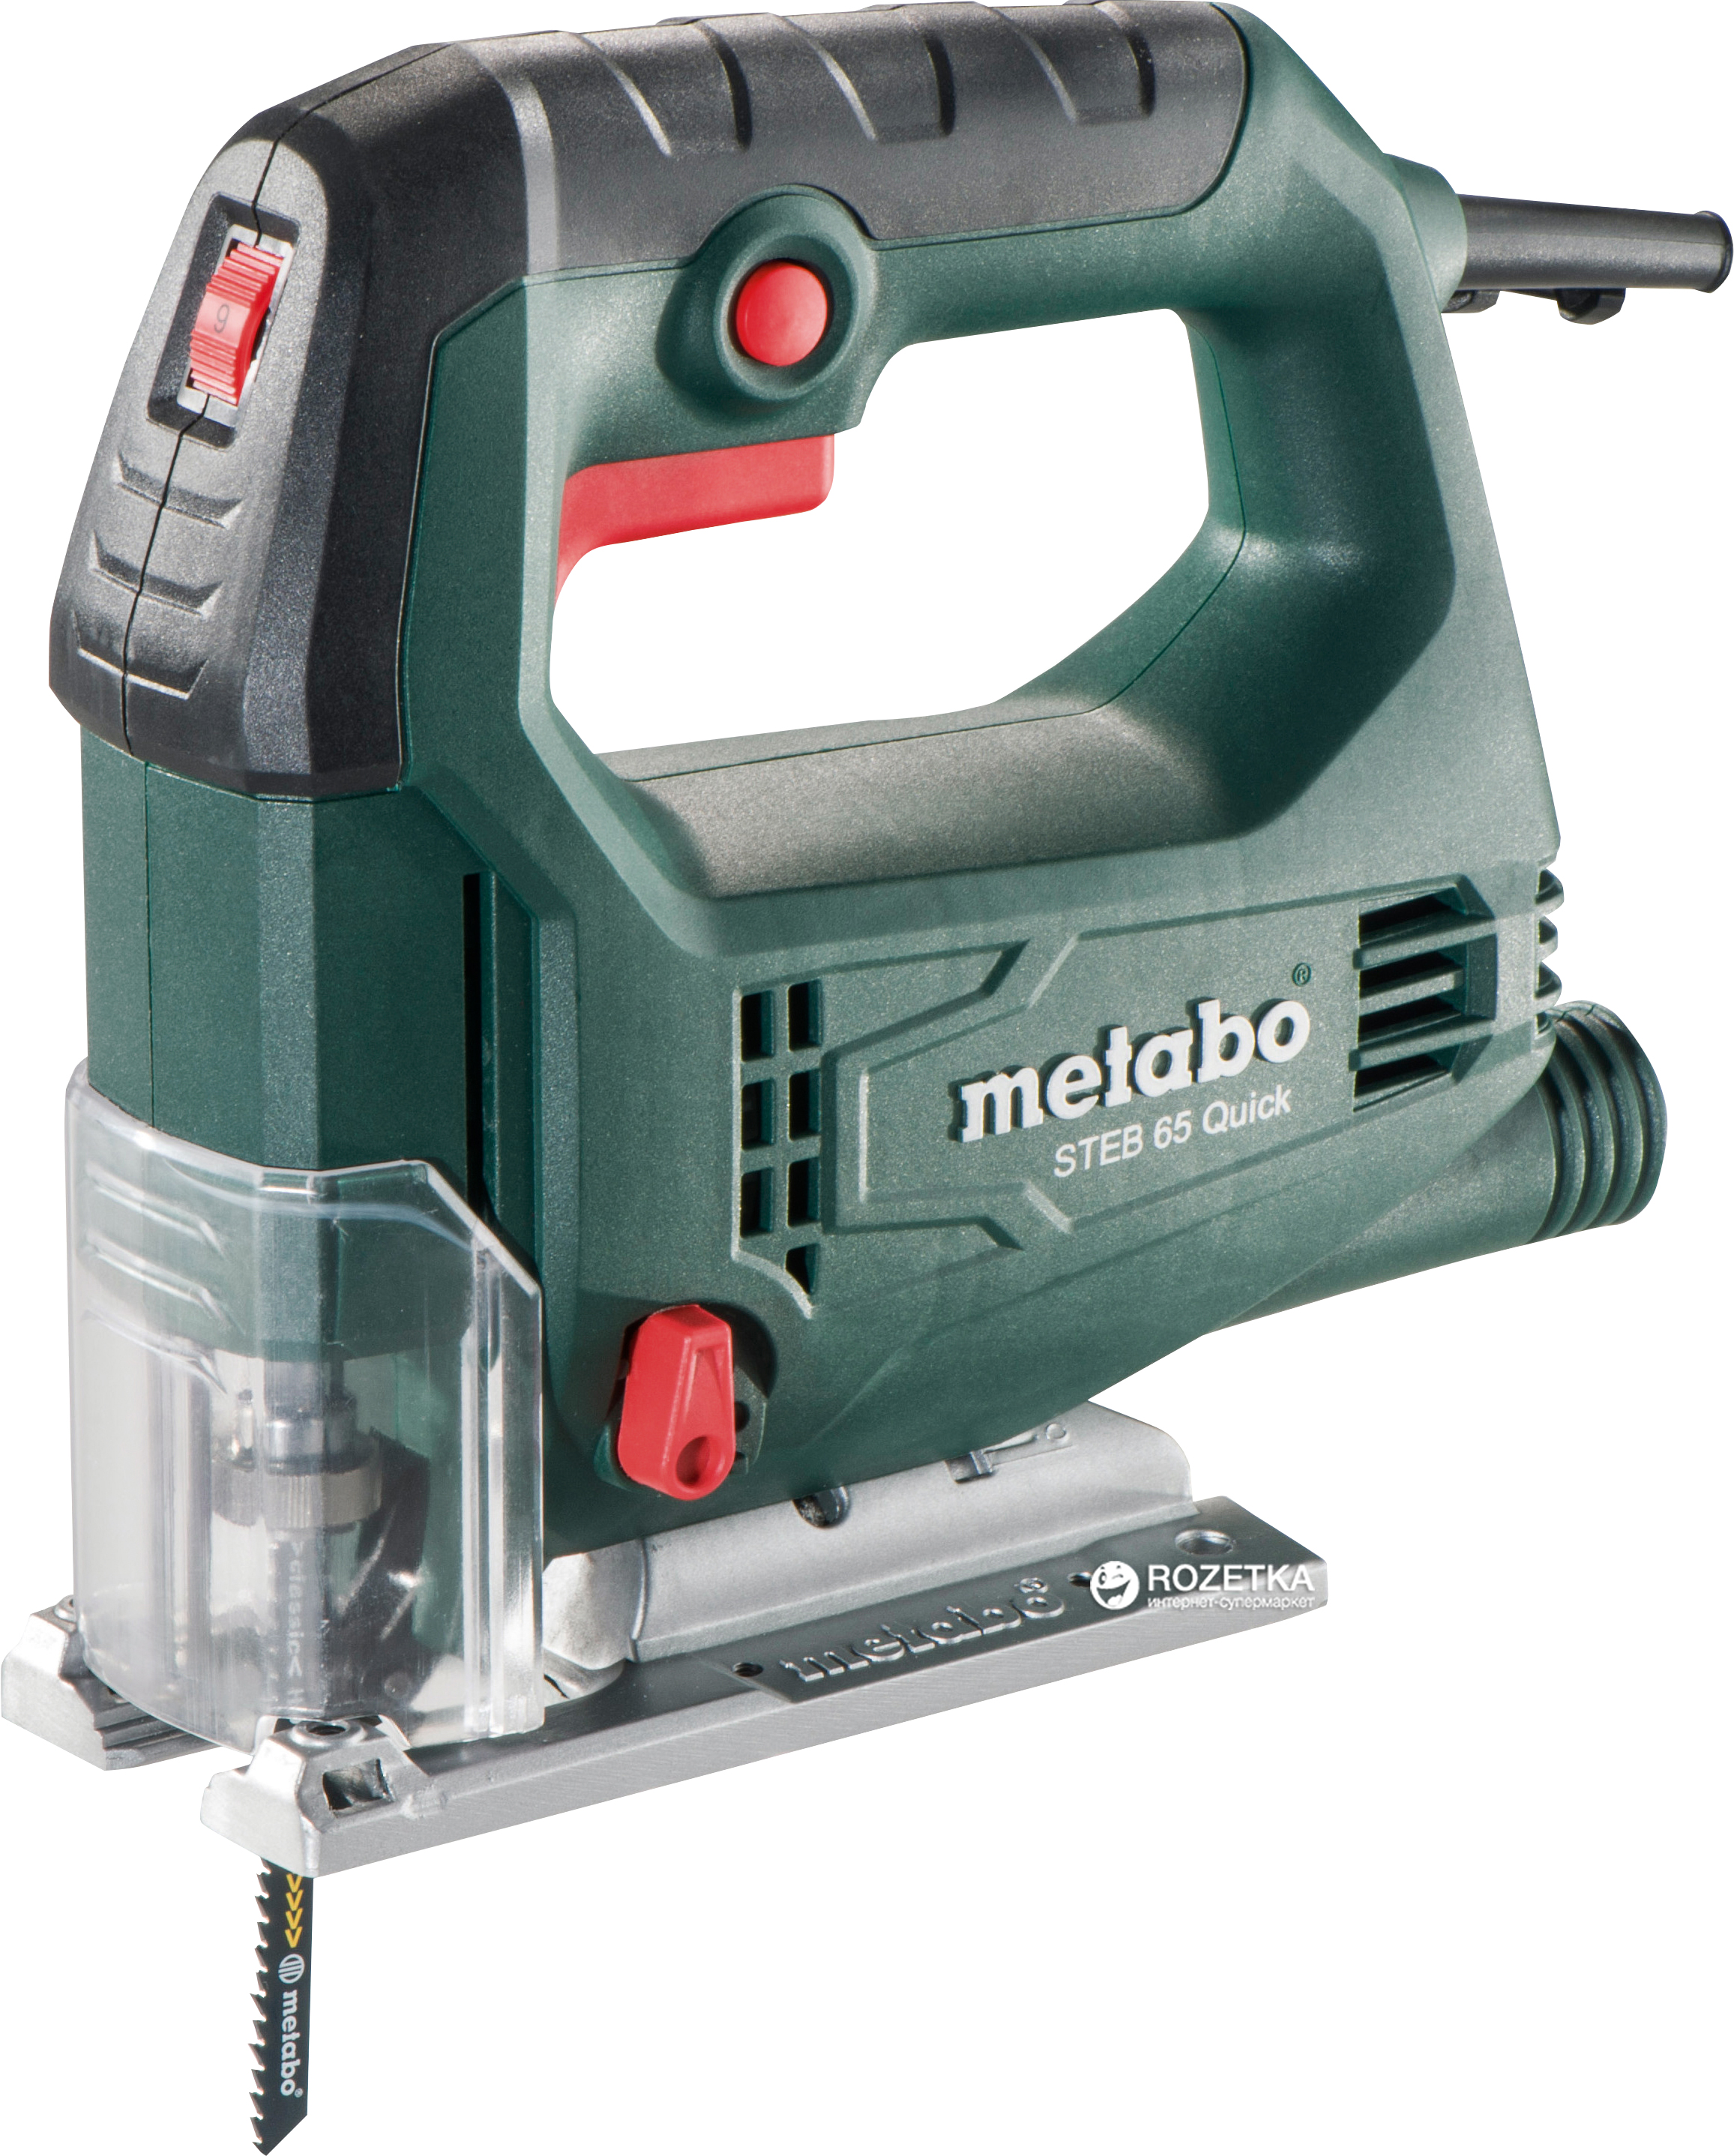 Электролобзик Metabo STEB 65 Quick 450 Вт